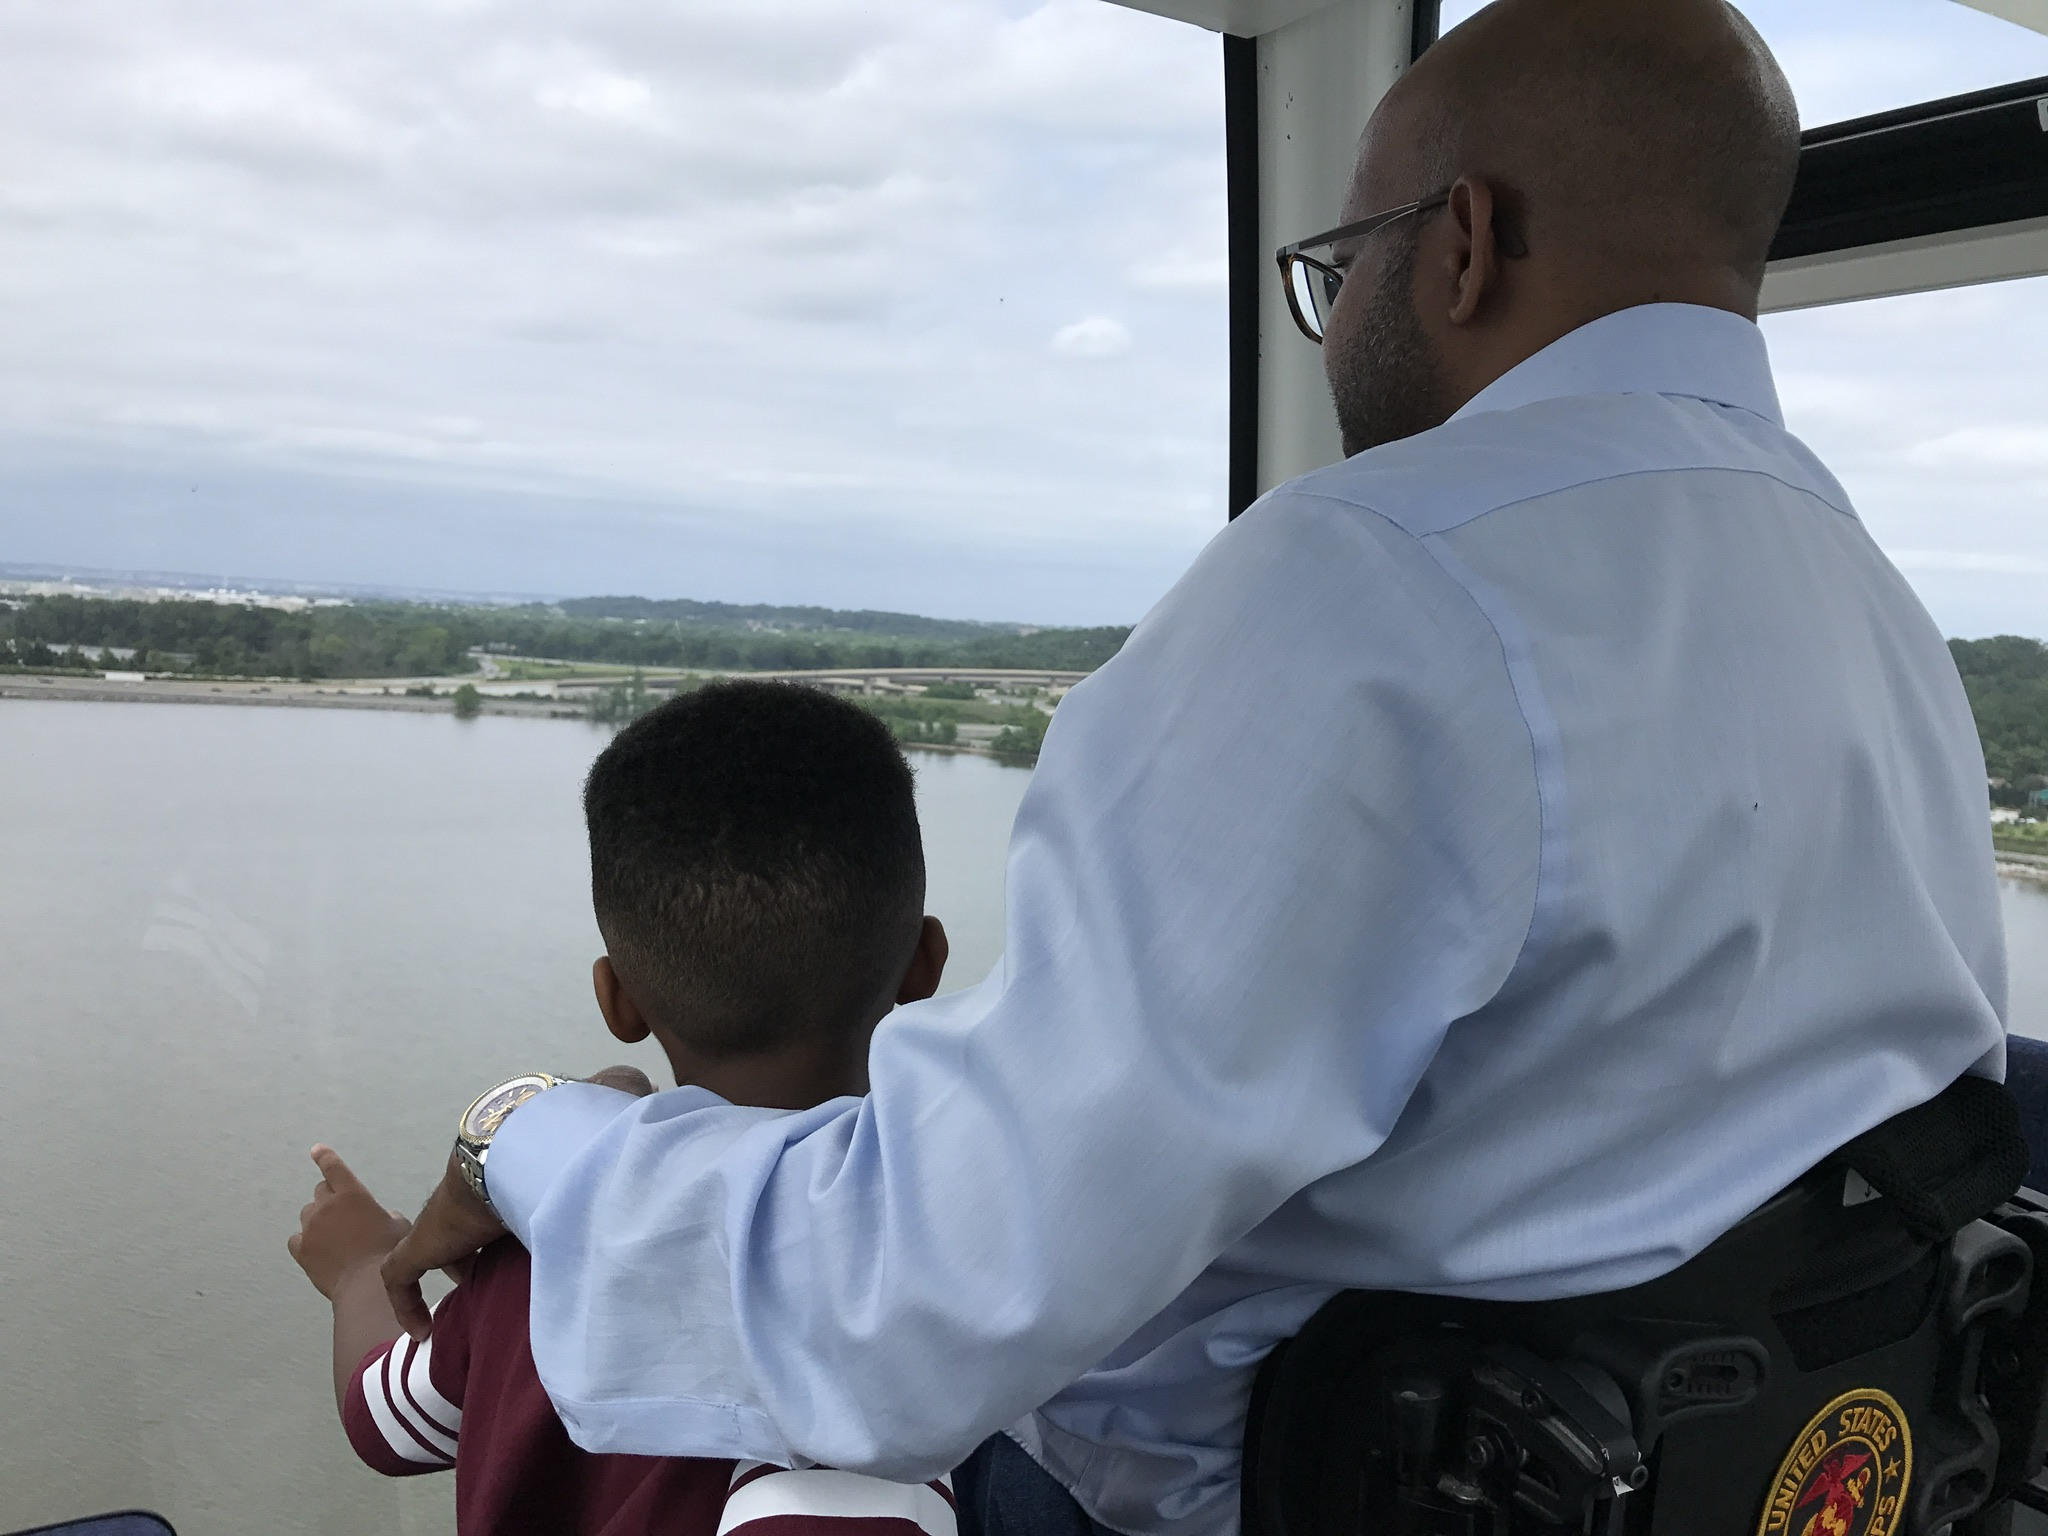 Sherman and his son looking out at a body of water